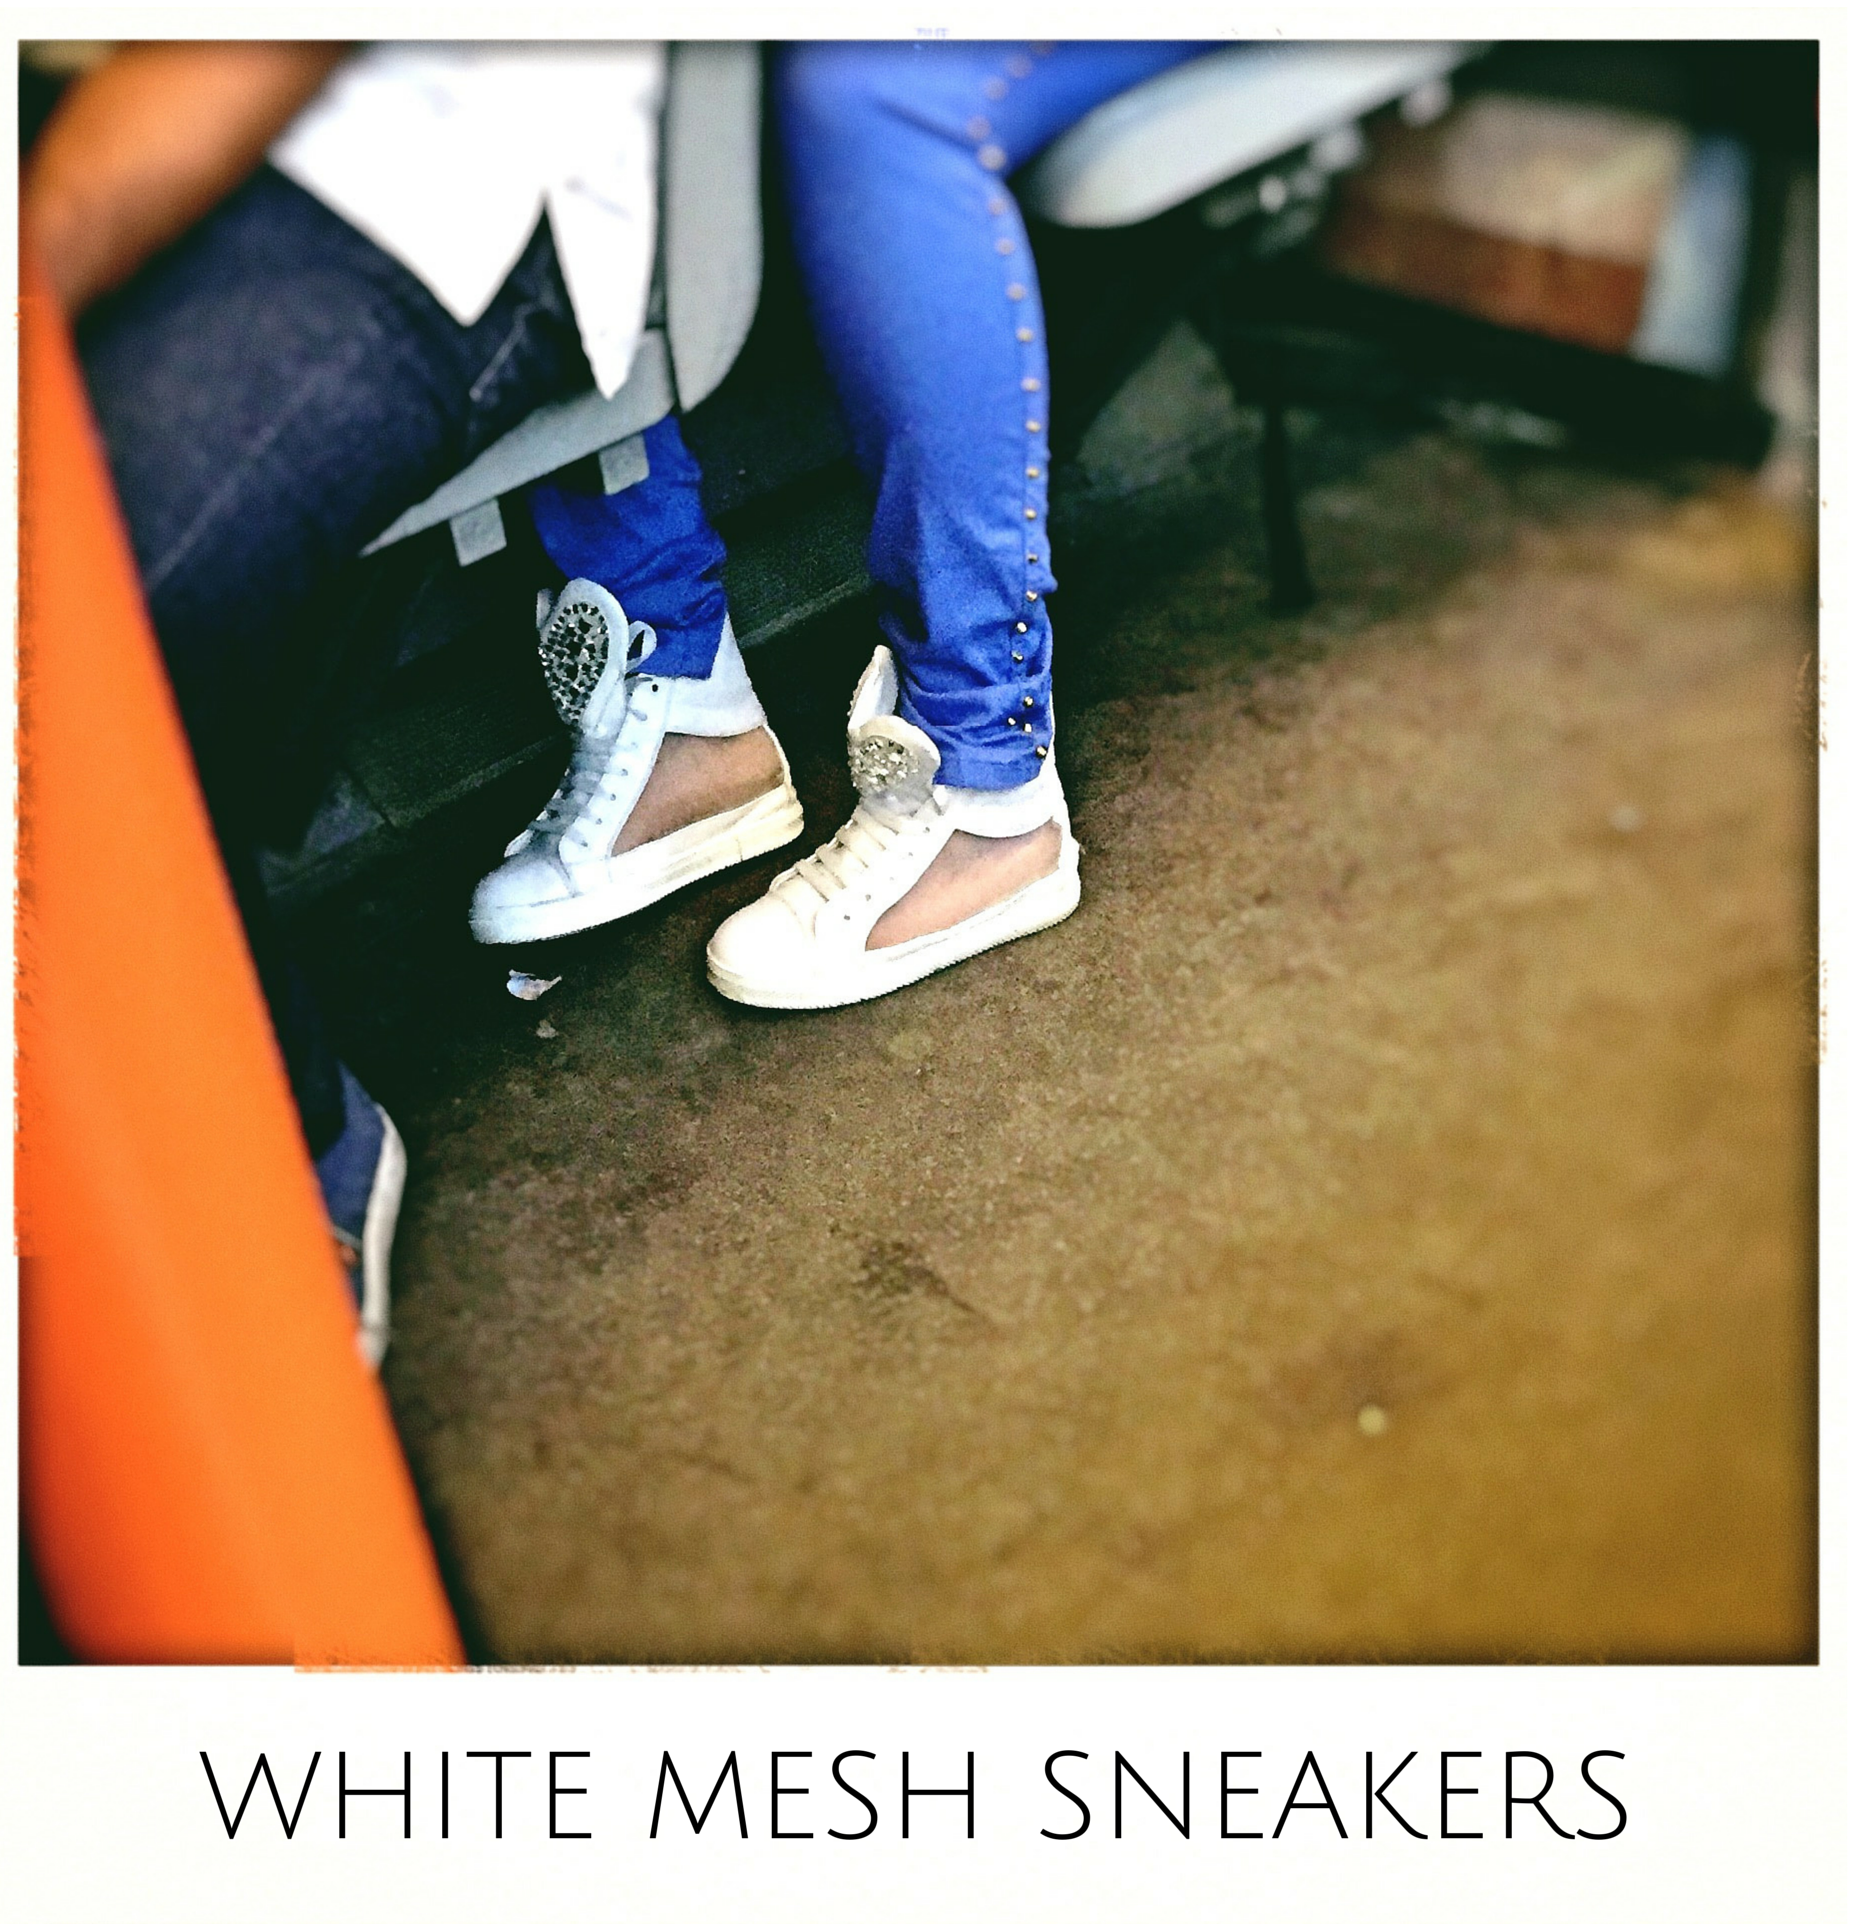 White MesS Sneakers